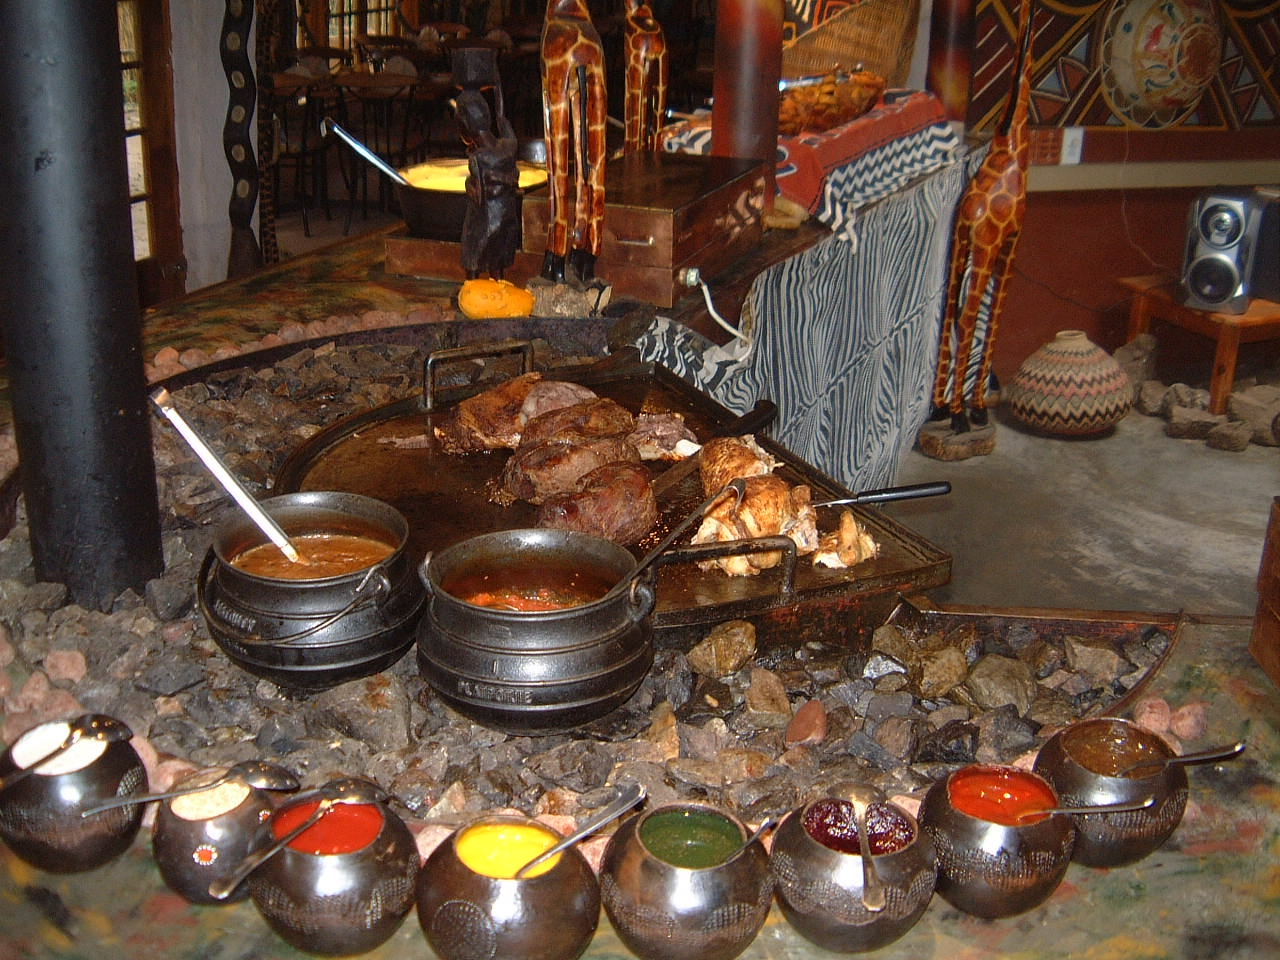 African cuisine and culture